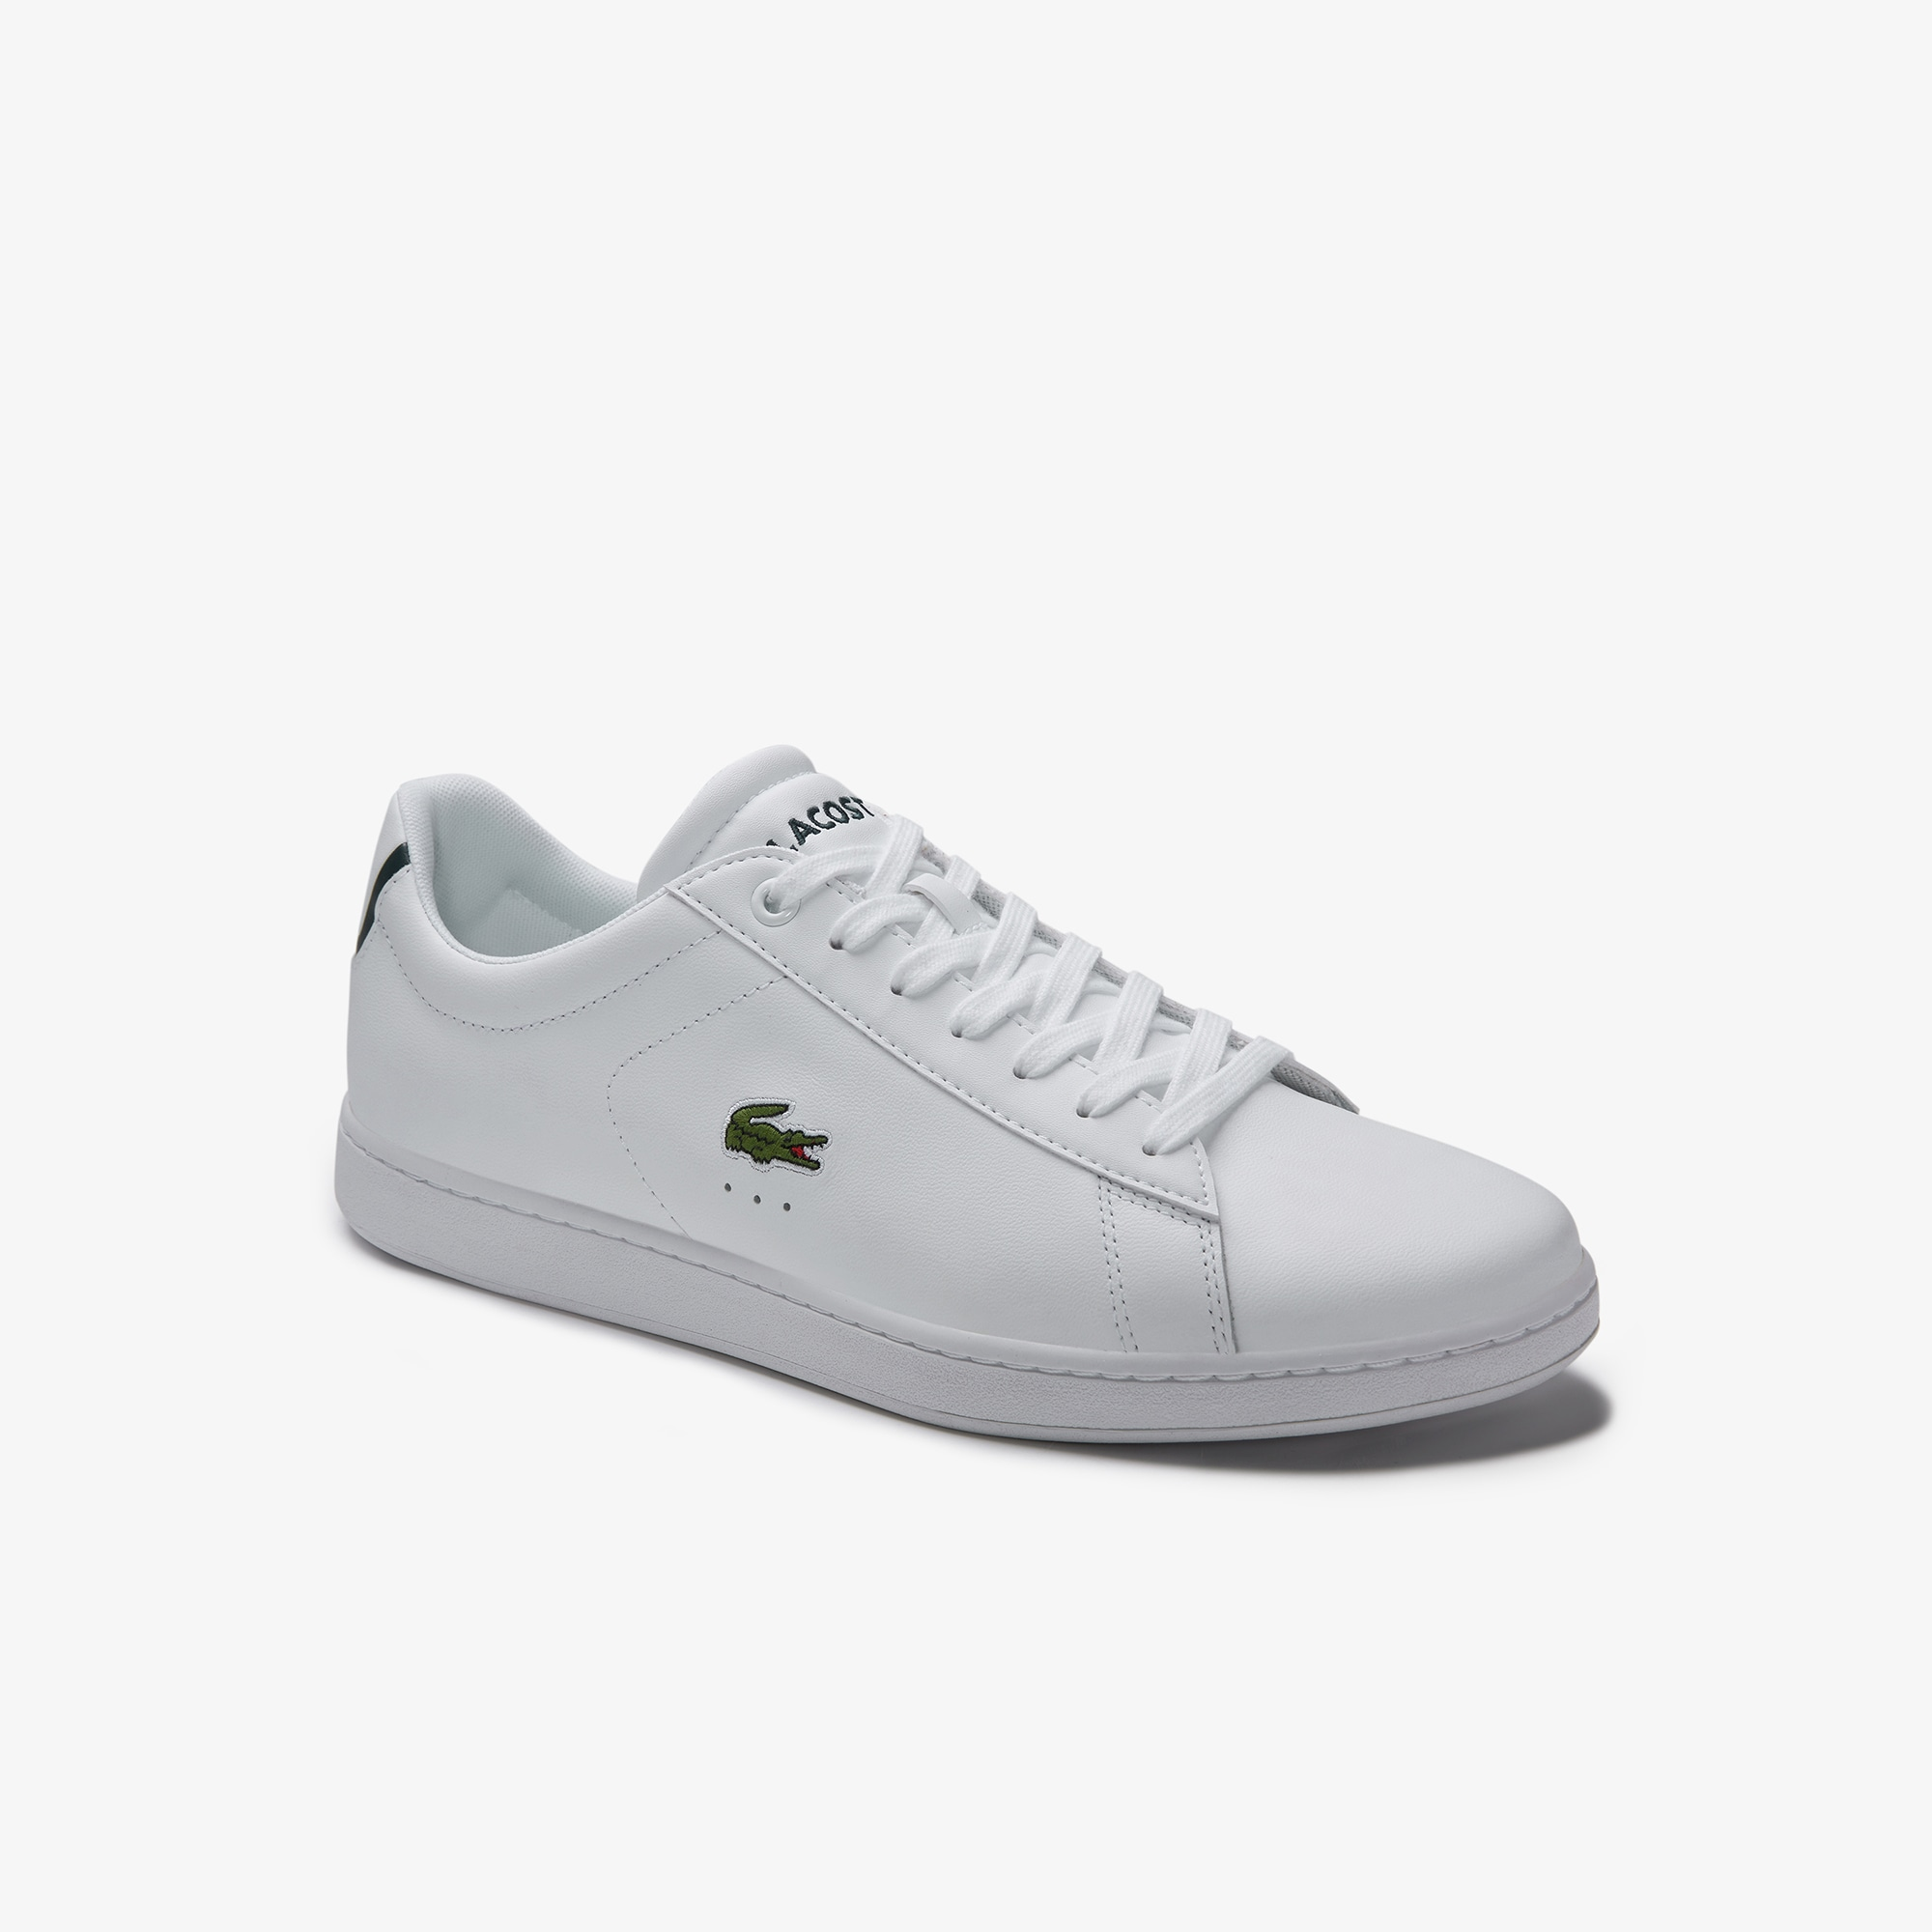 lacoste sneakers mens sale - 57% OFF